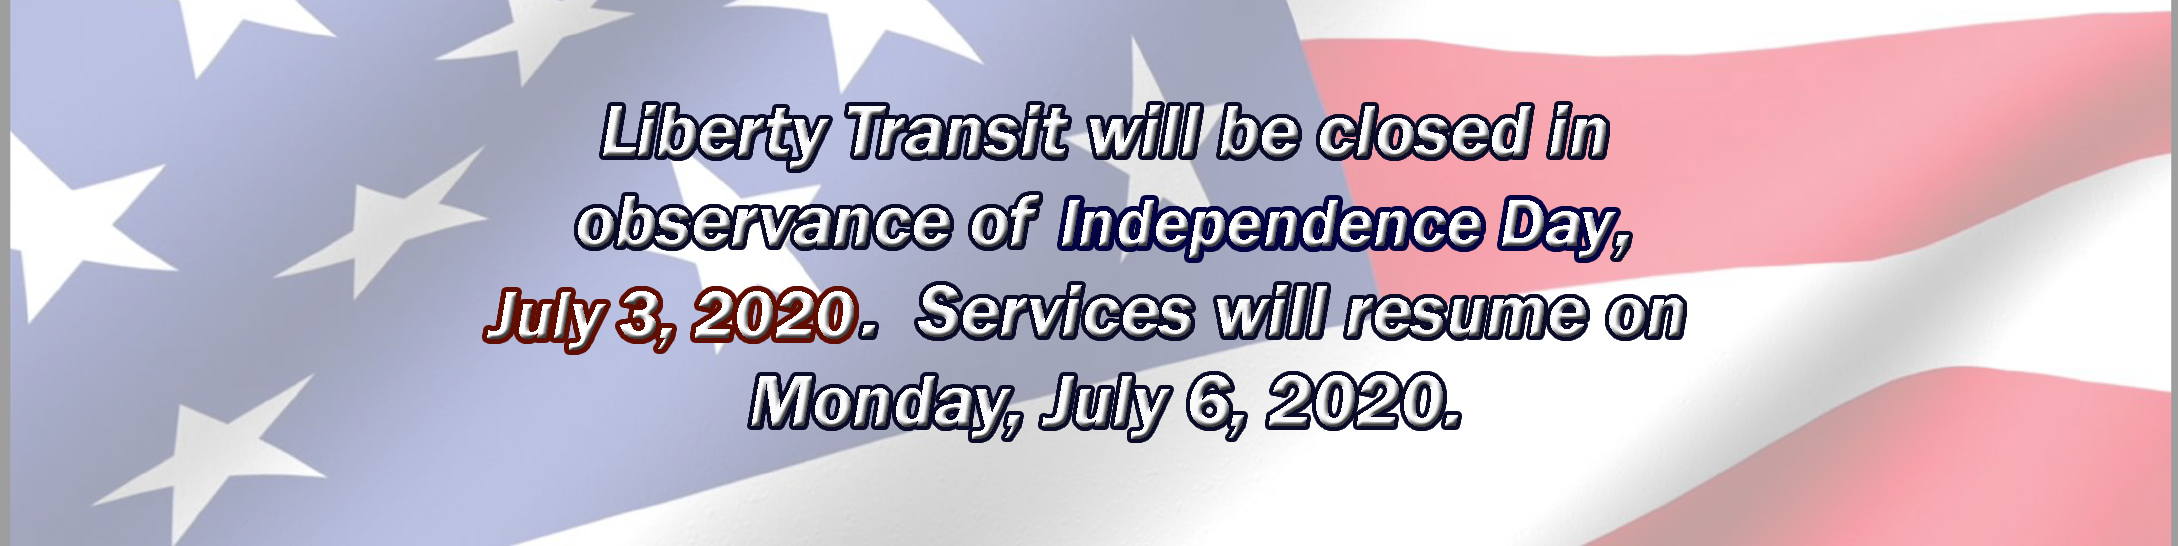 Liberty Transit will be closed on July 3, 2020 in observance of Independence Day. Services will resume on Monday July 6th.